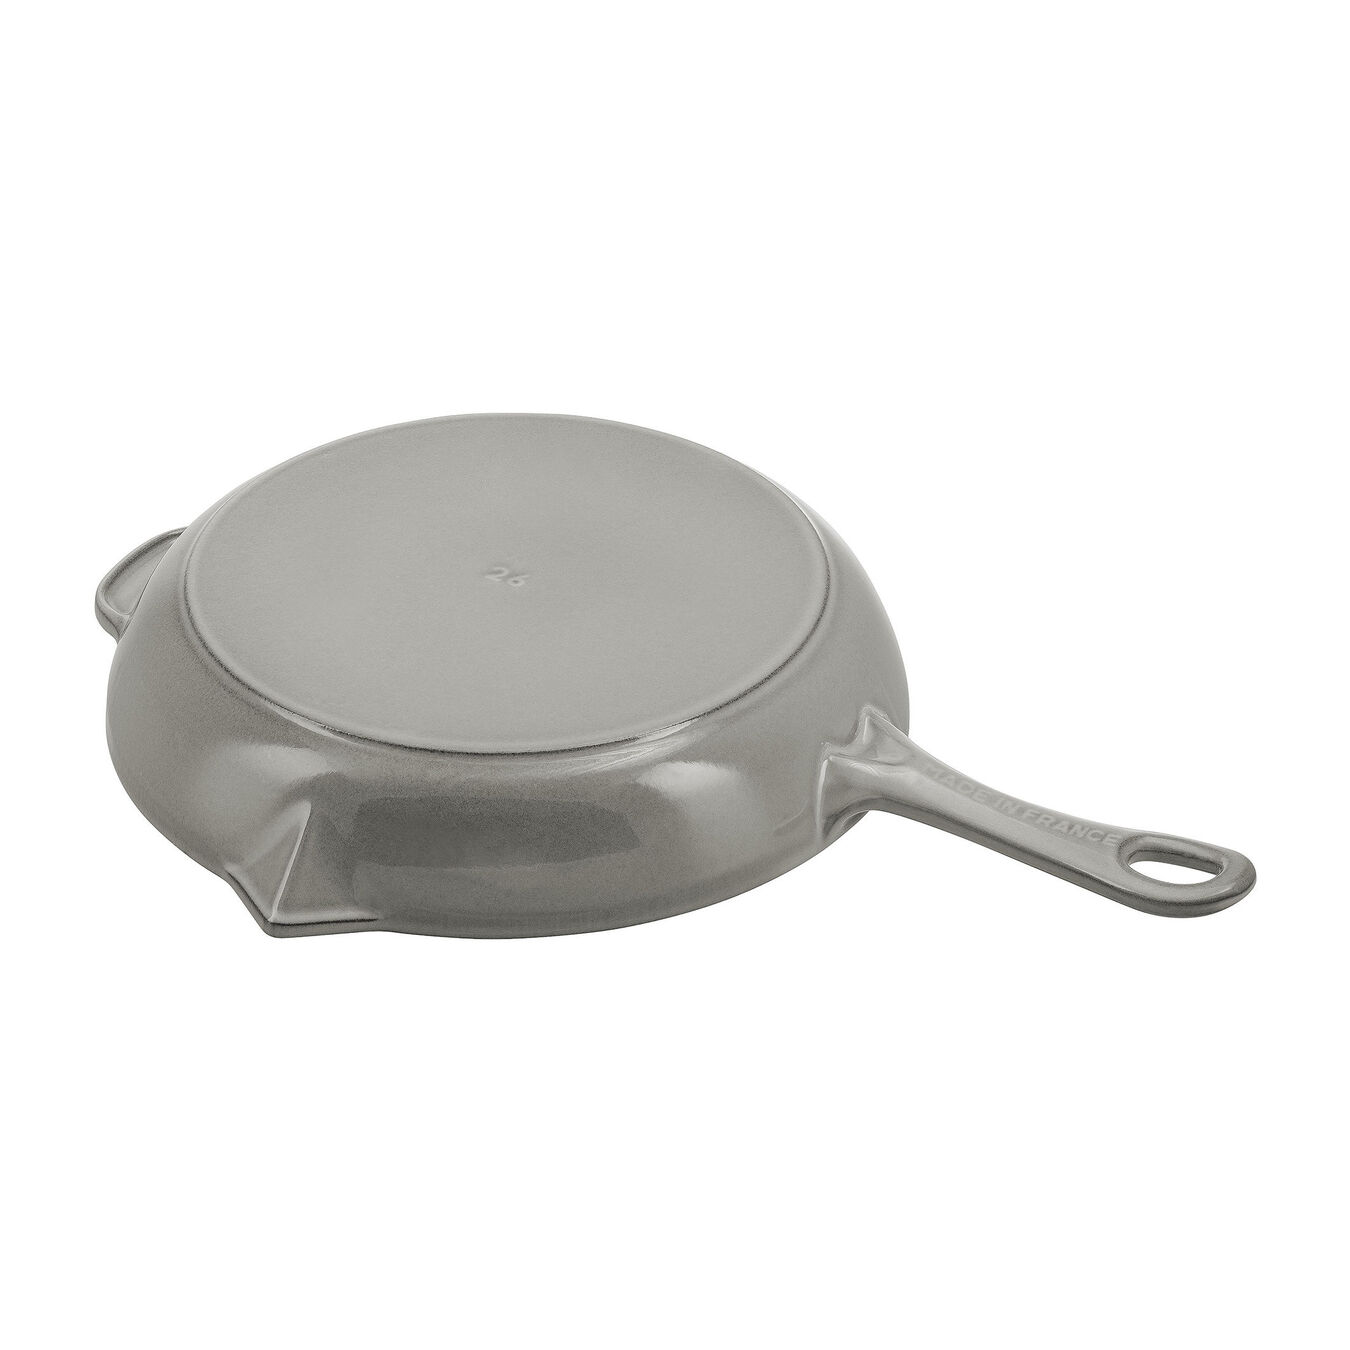 26 cm / 10 inch Frying pan with pouring spout, graphite-grey,,large 3